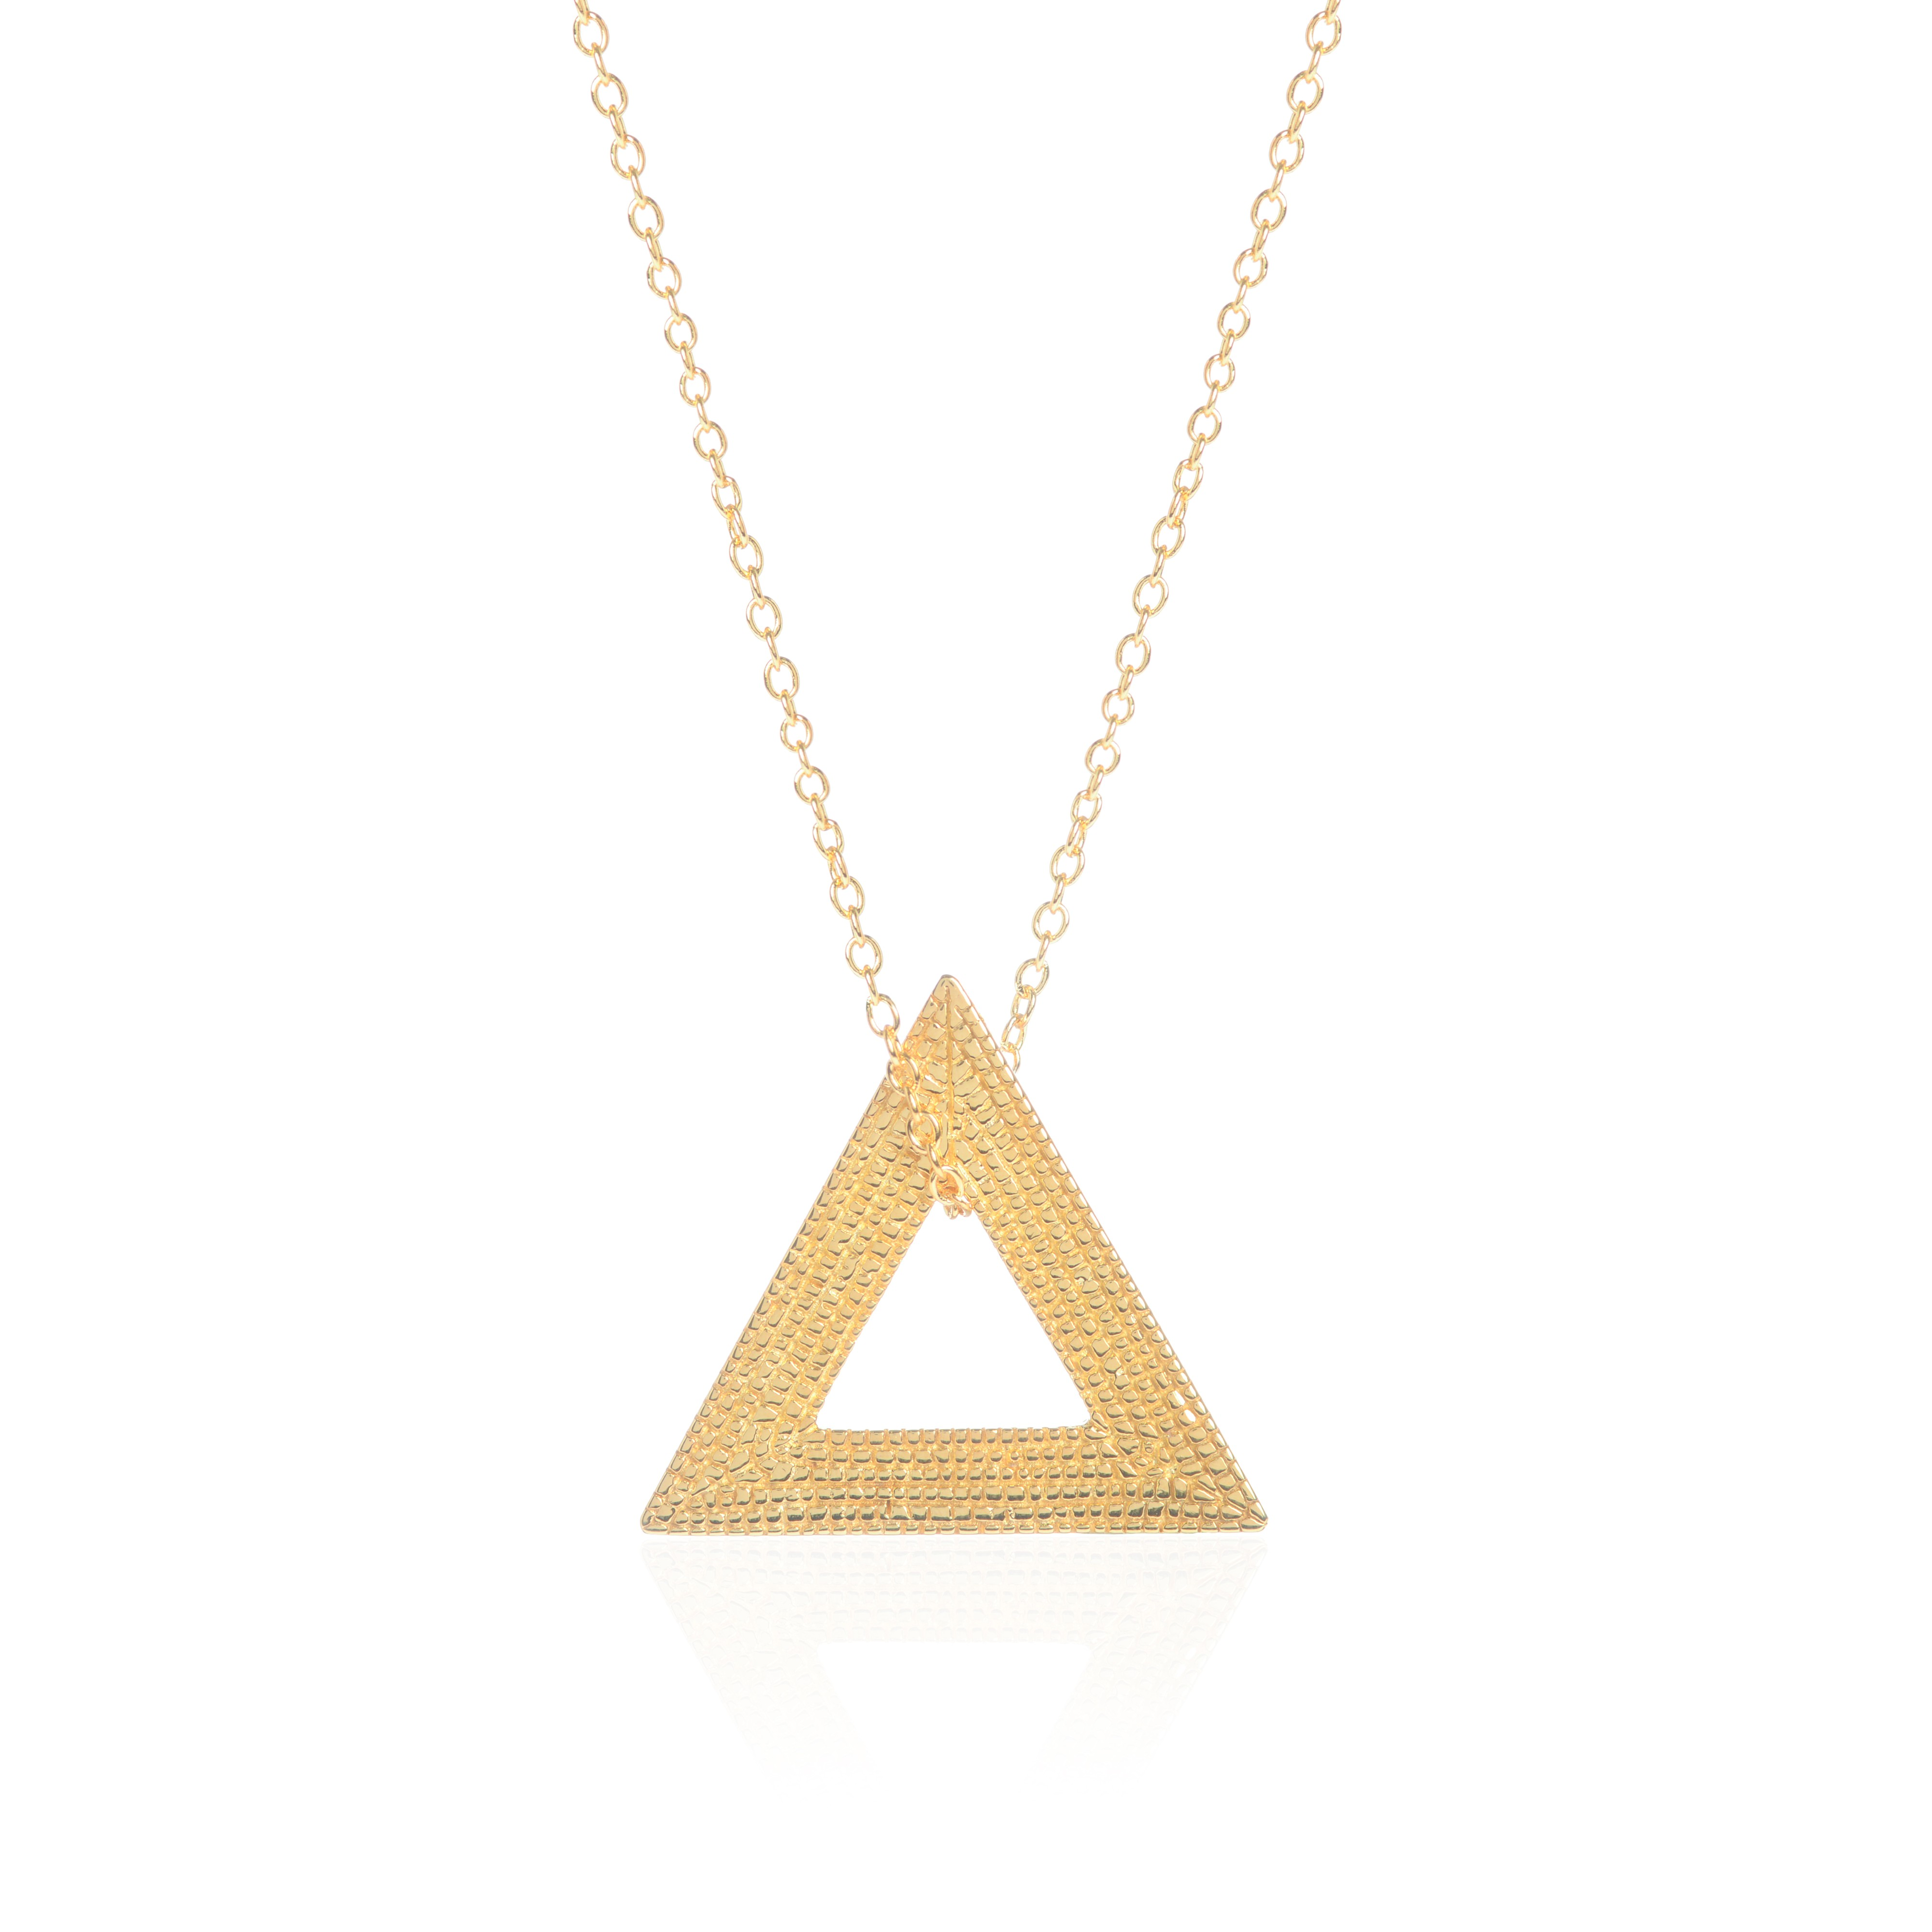 Who Says We Can't Change? Necklace, Gold by Sally Lane Jewellery on curated-crowd.com